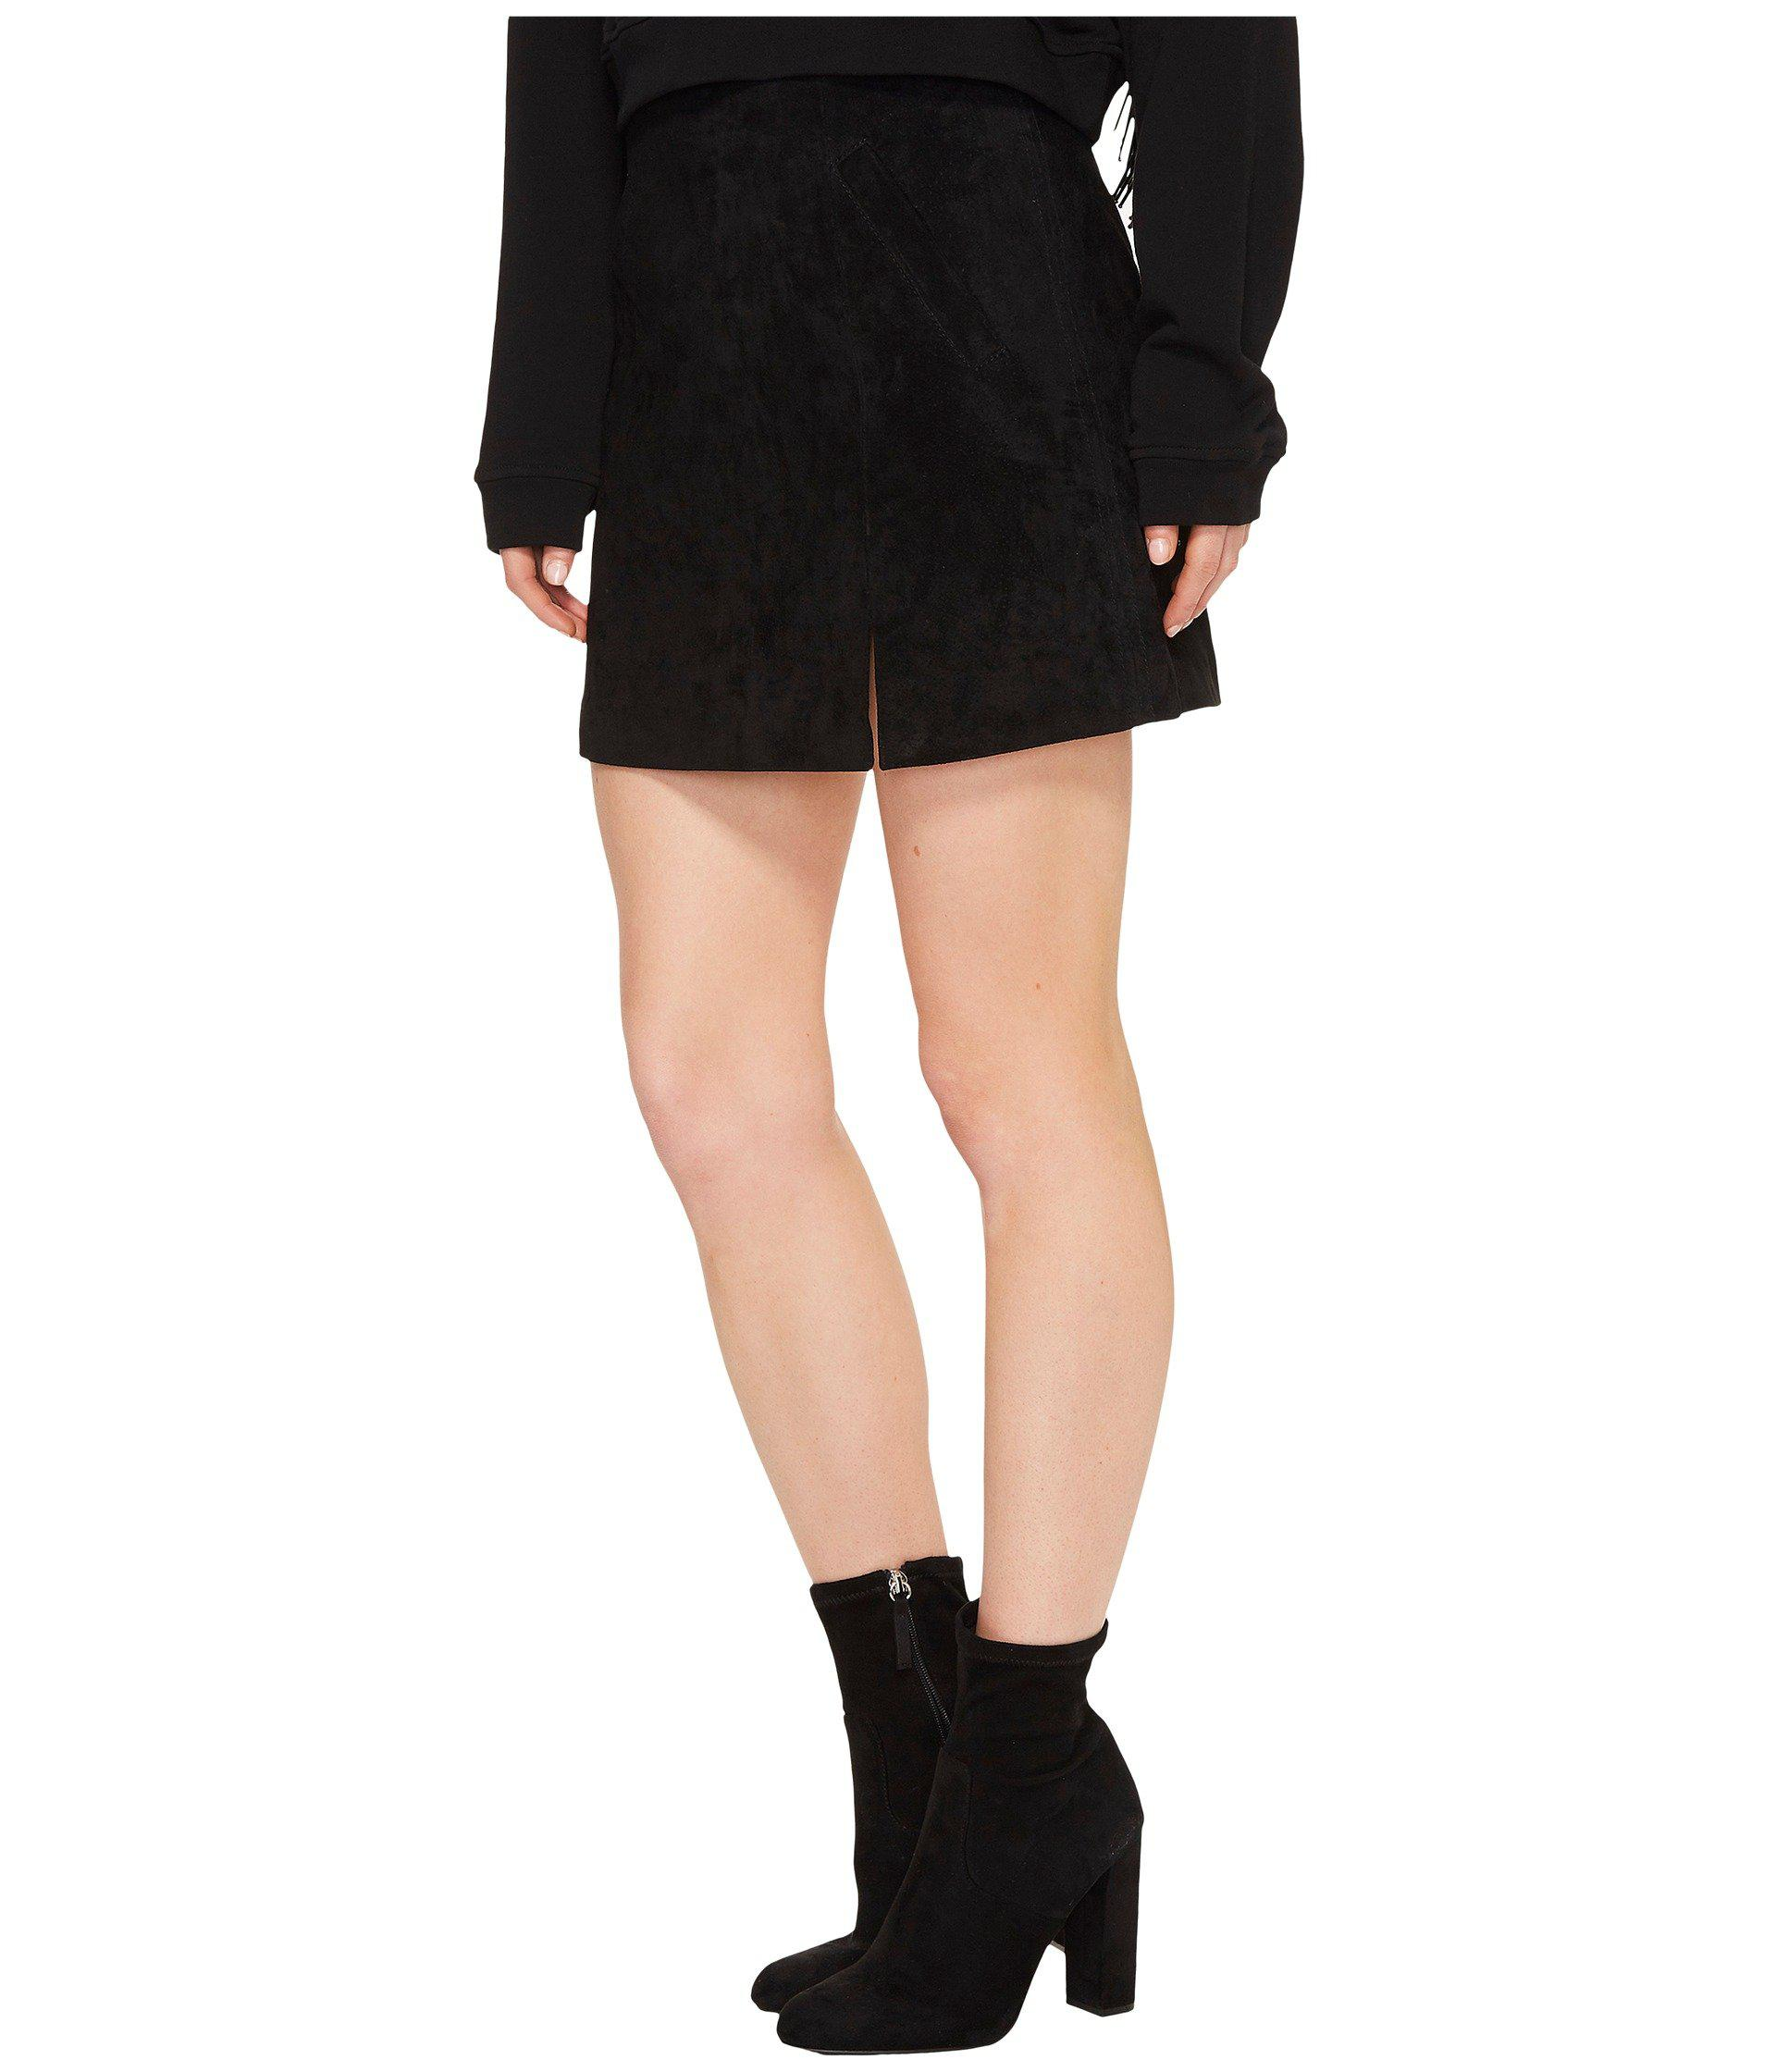 2c52ae1ea0 Lyst - Blank NYC Suede Mini Skirt In Black/seal The Deal in Black - Save 25%